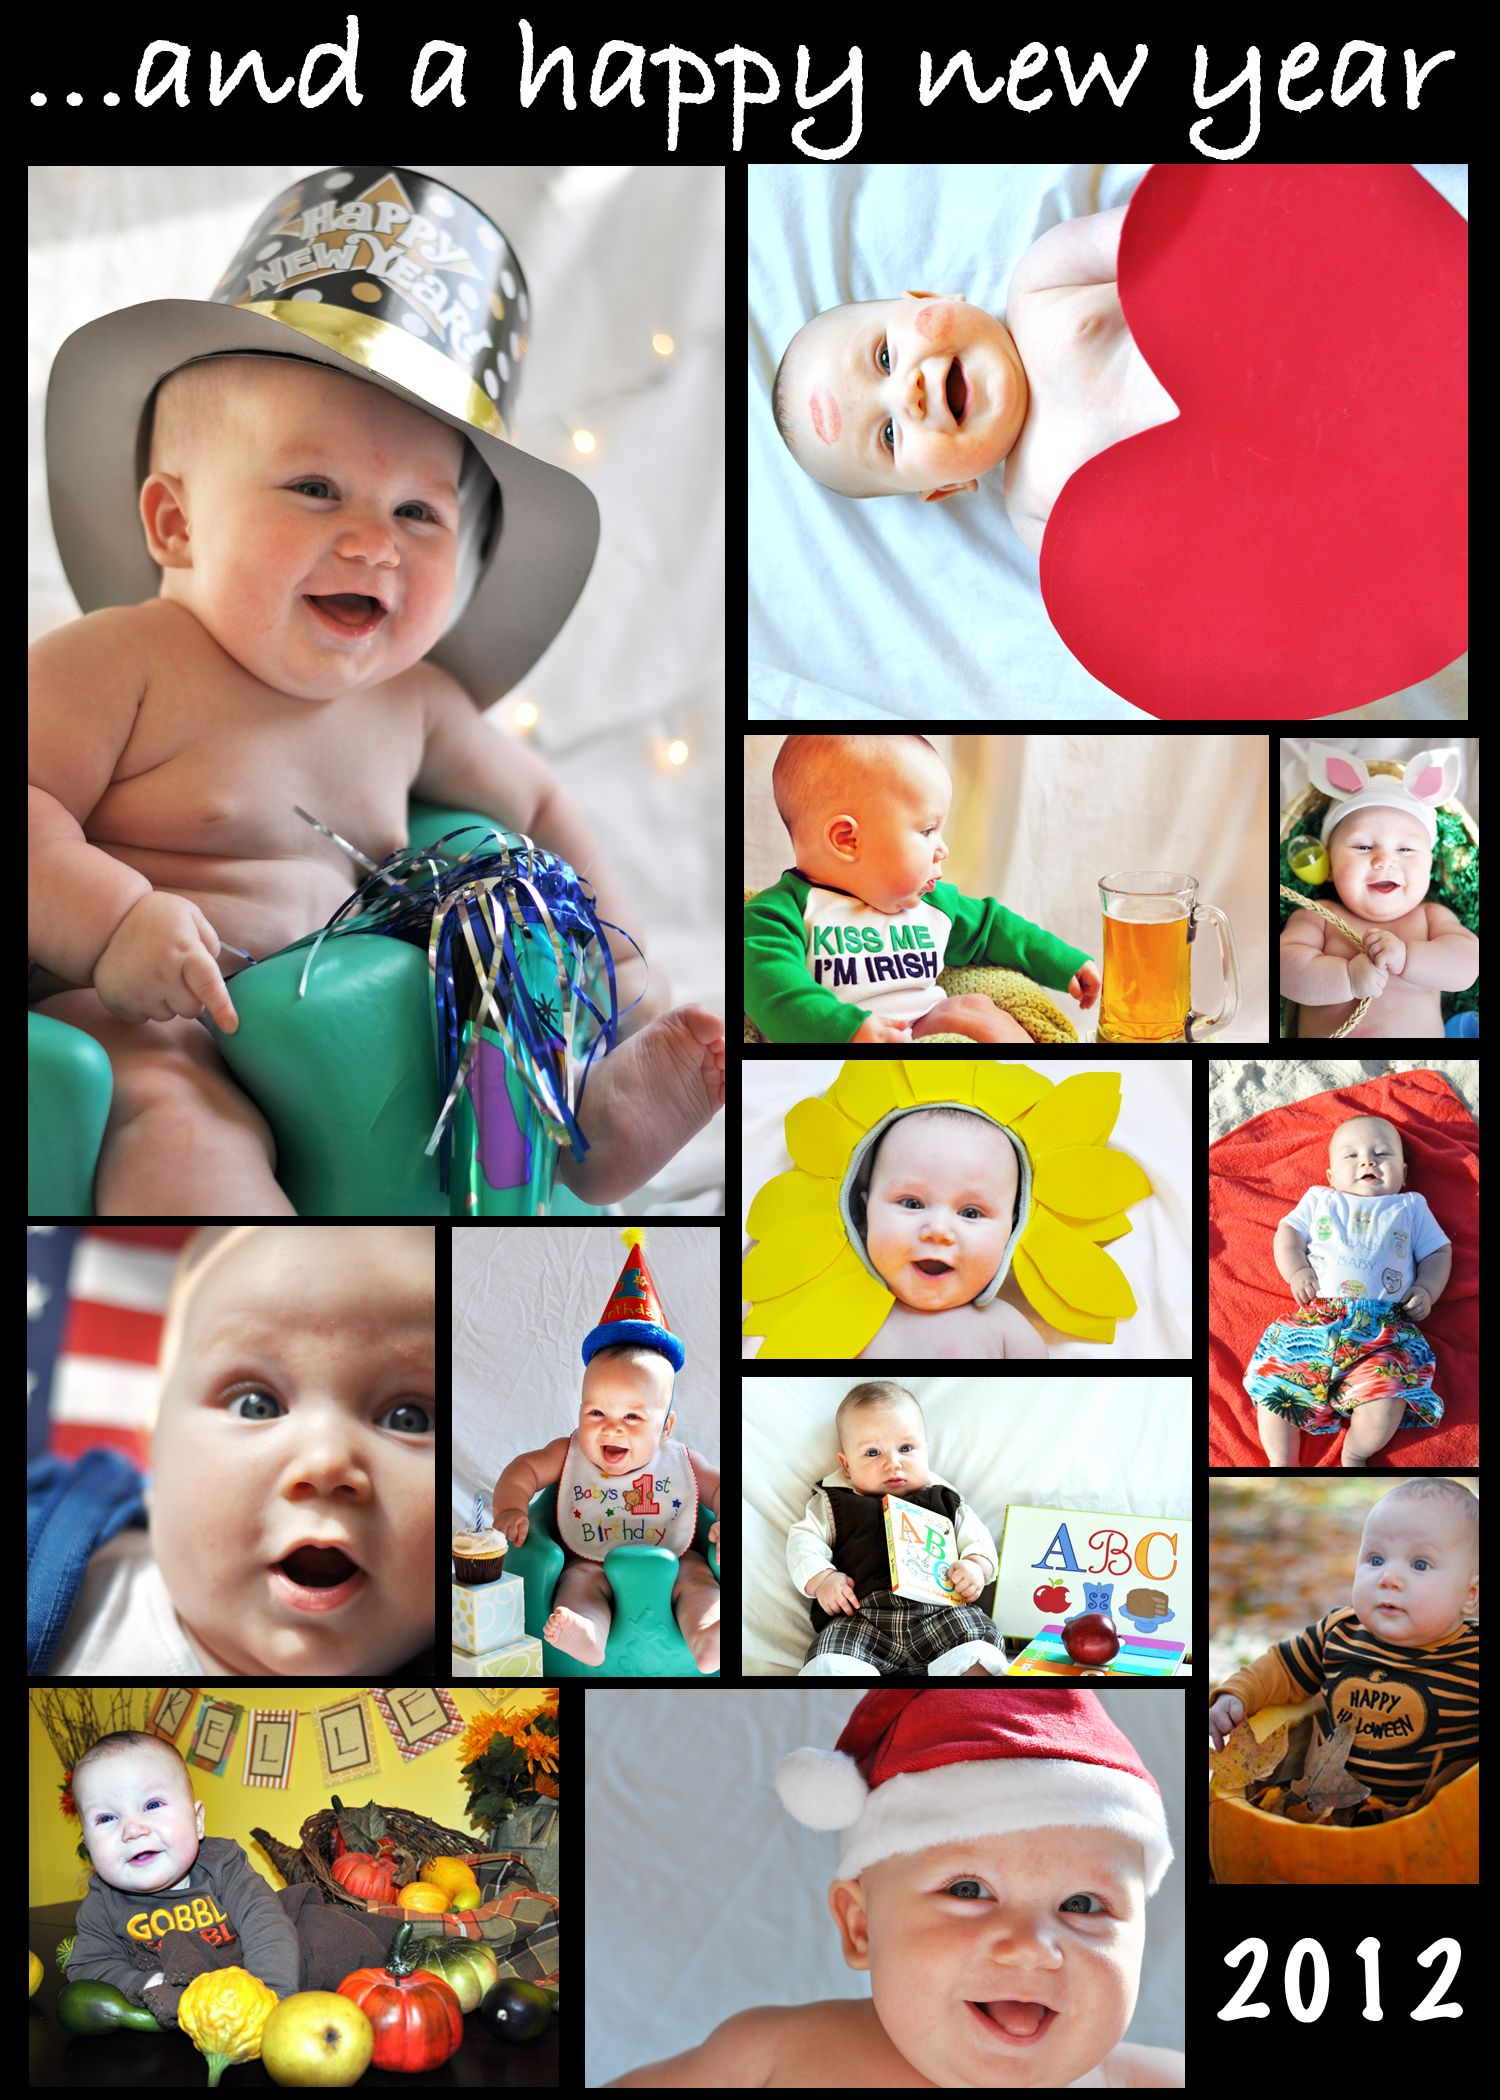 Baby Photo Calendar Ideas : Baby photo shoot happy new year card also a great